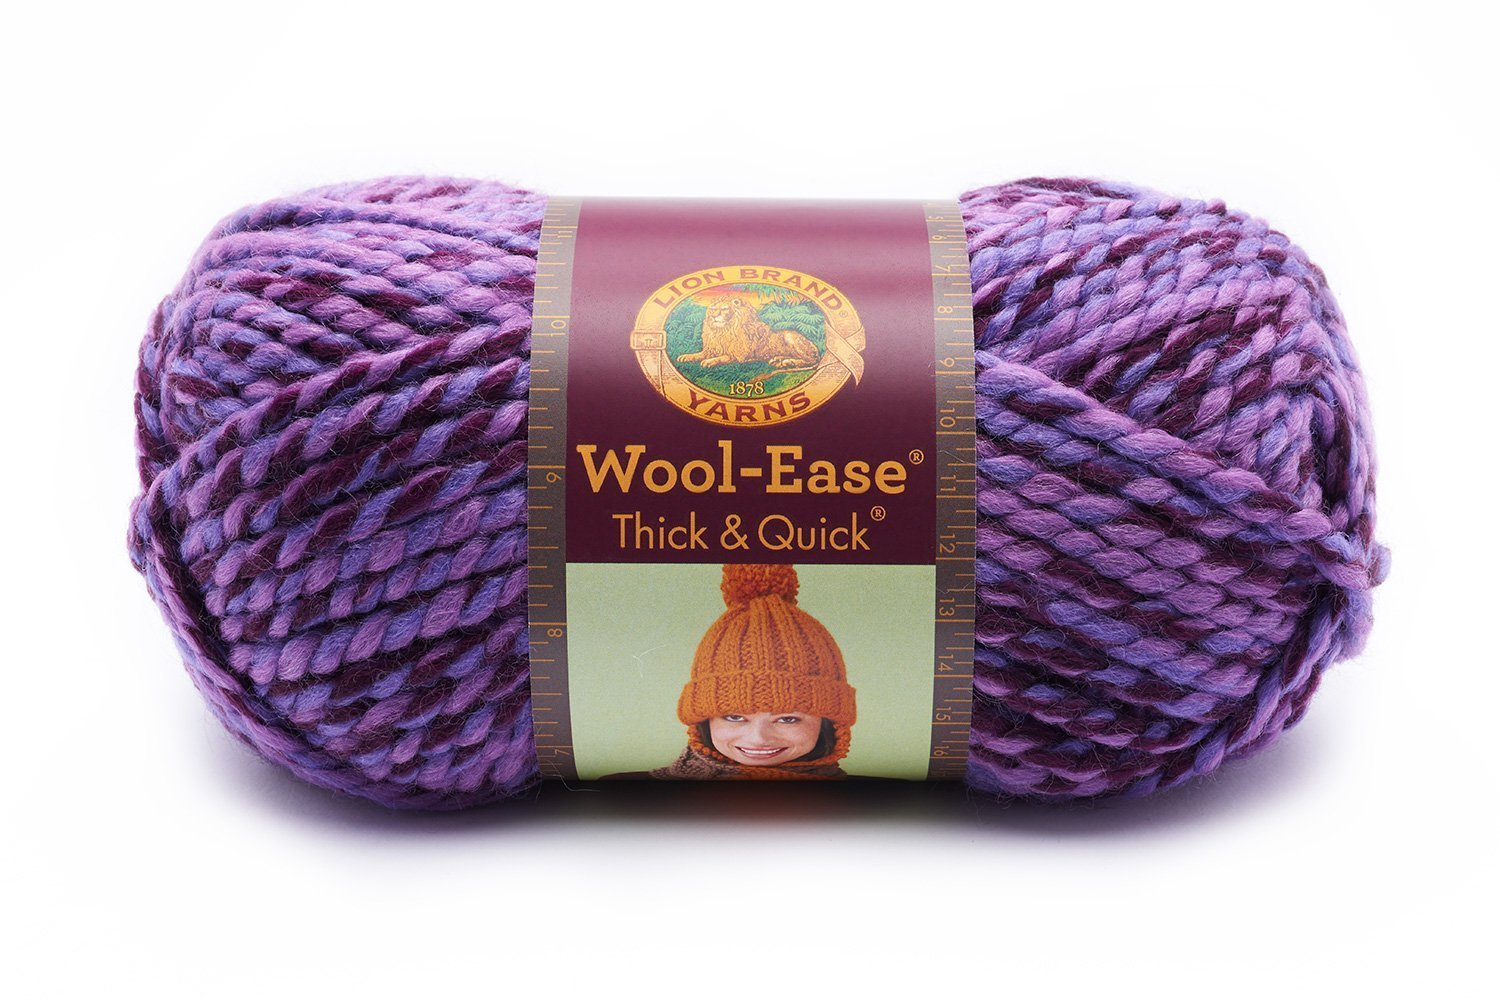 Lion Brand Yarn Wool-Ease Thick and Quick Yarn, (6-Pack), Grape by Lion Brand (Image #2)